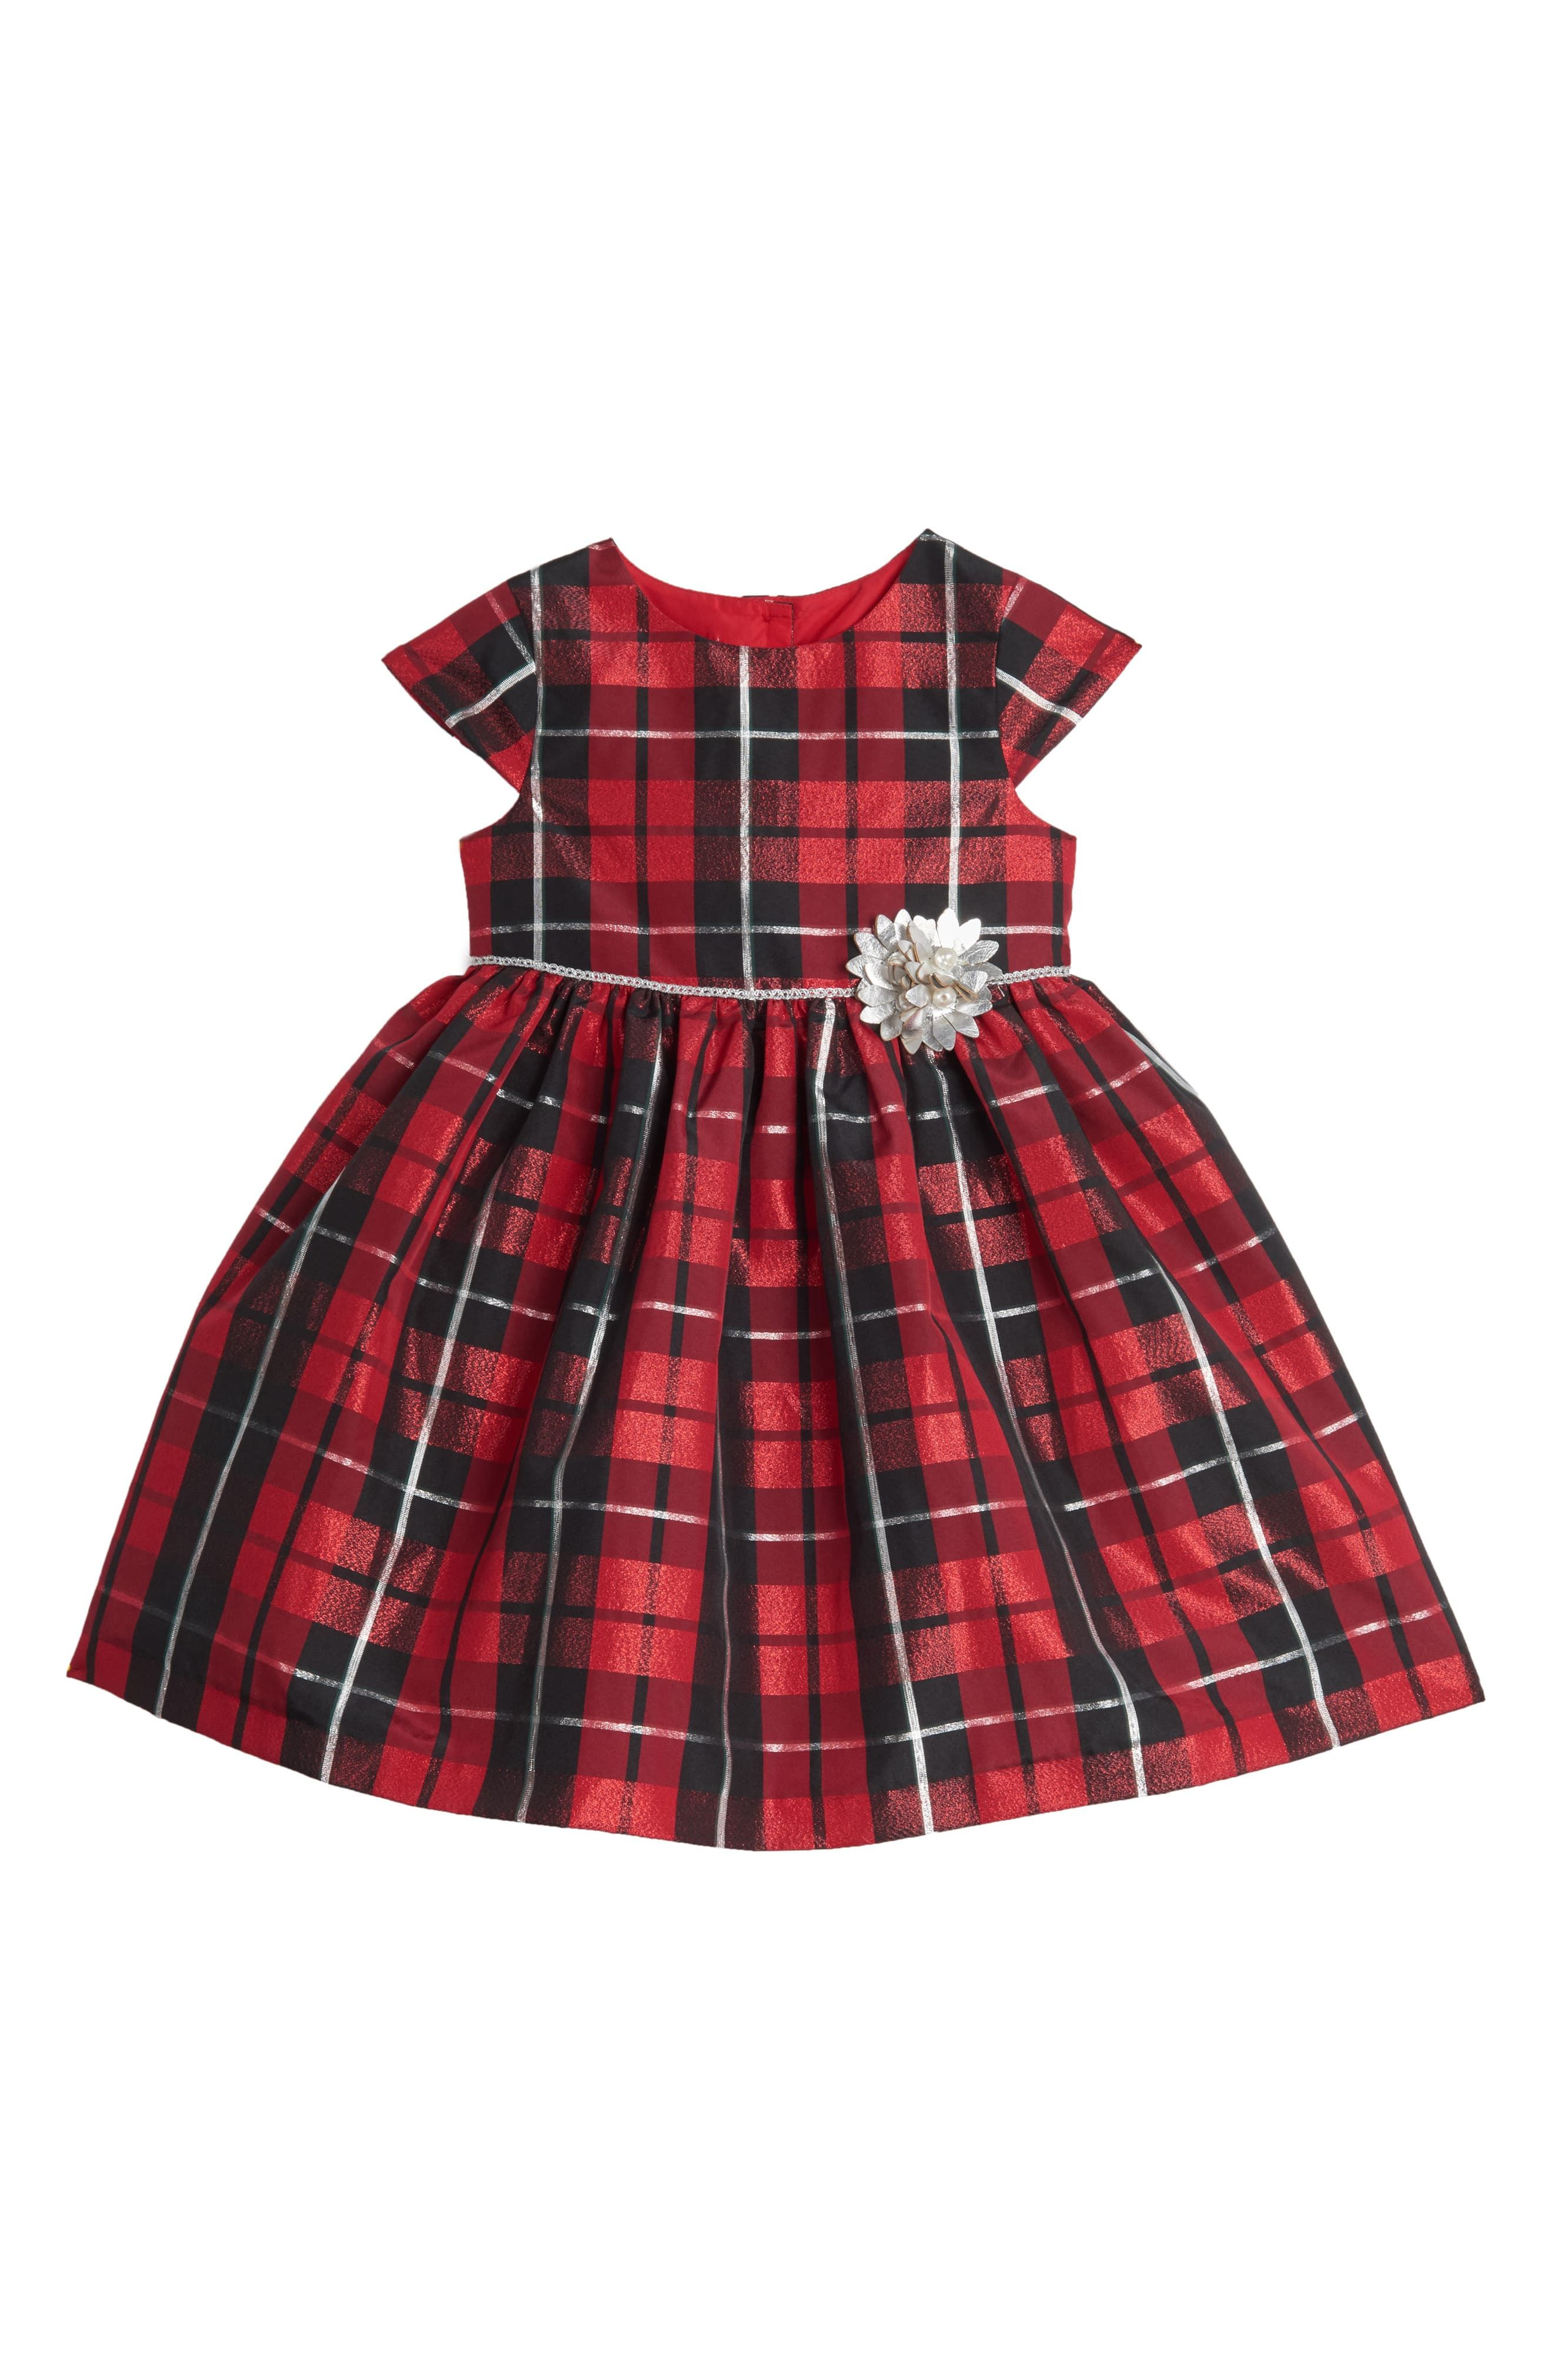 Infant Girl's Pippa & Julie Plaid Party Dress, Size 0-3M - Red #babygirlpartydresses